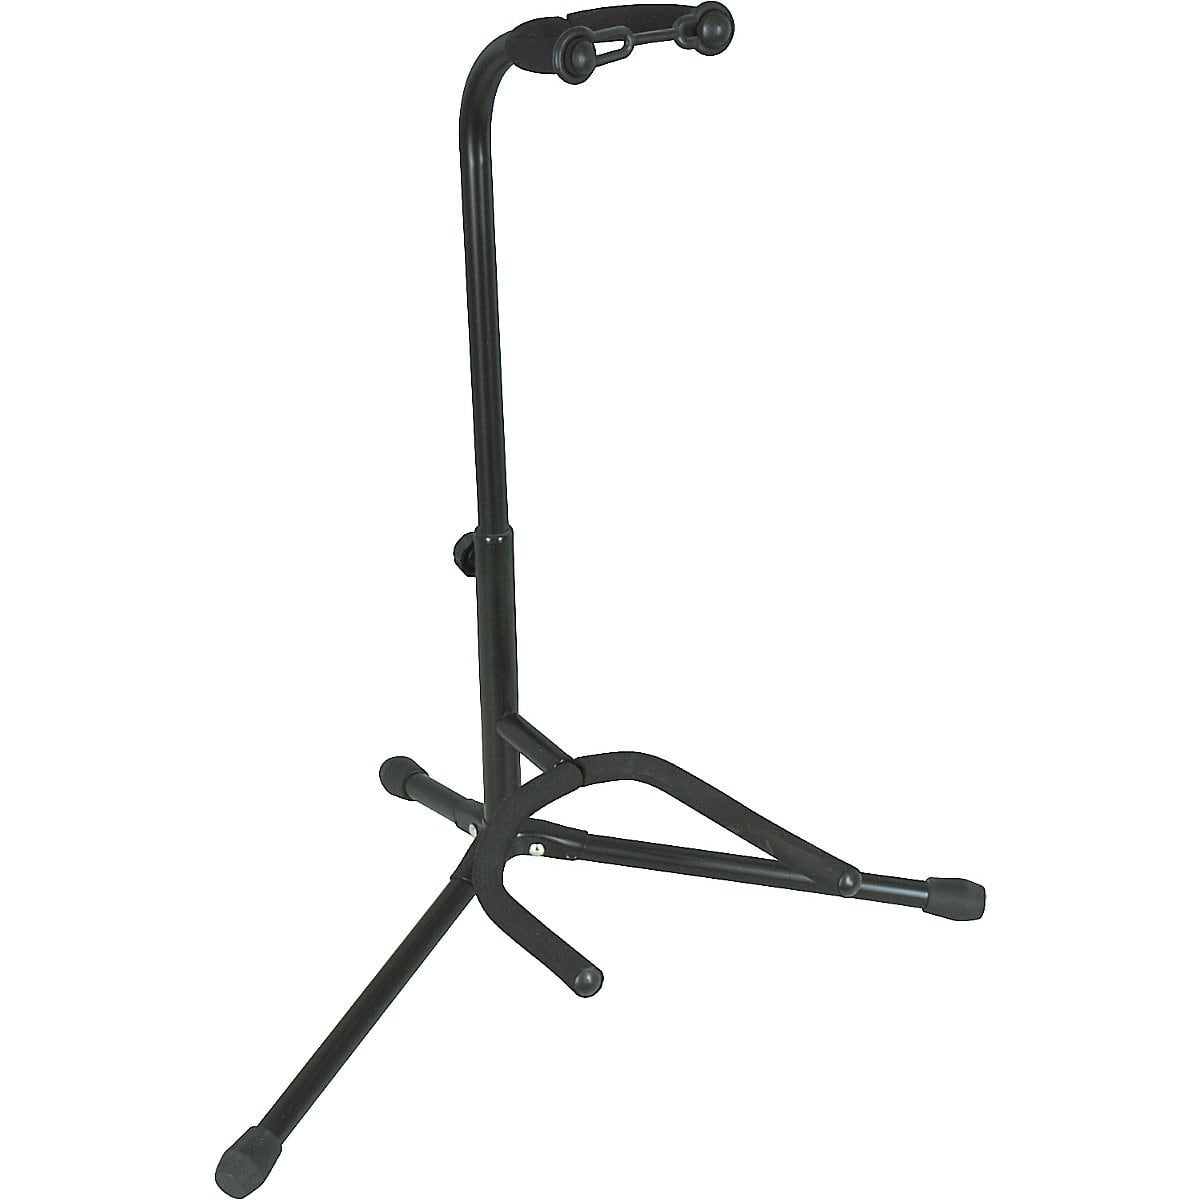 Pair of Musician's Gear Guitar Stands for $9.99 + Free Shipping from Musician's Friend